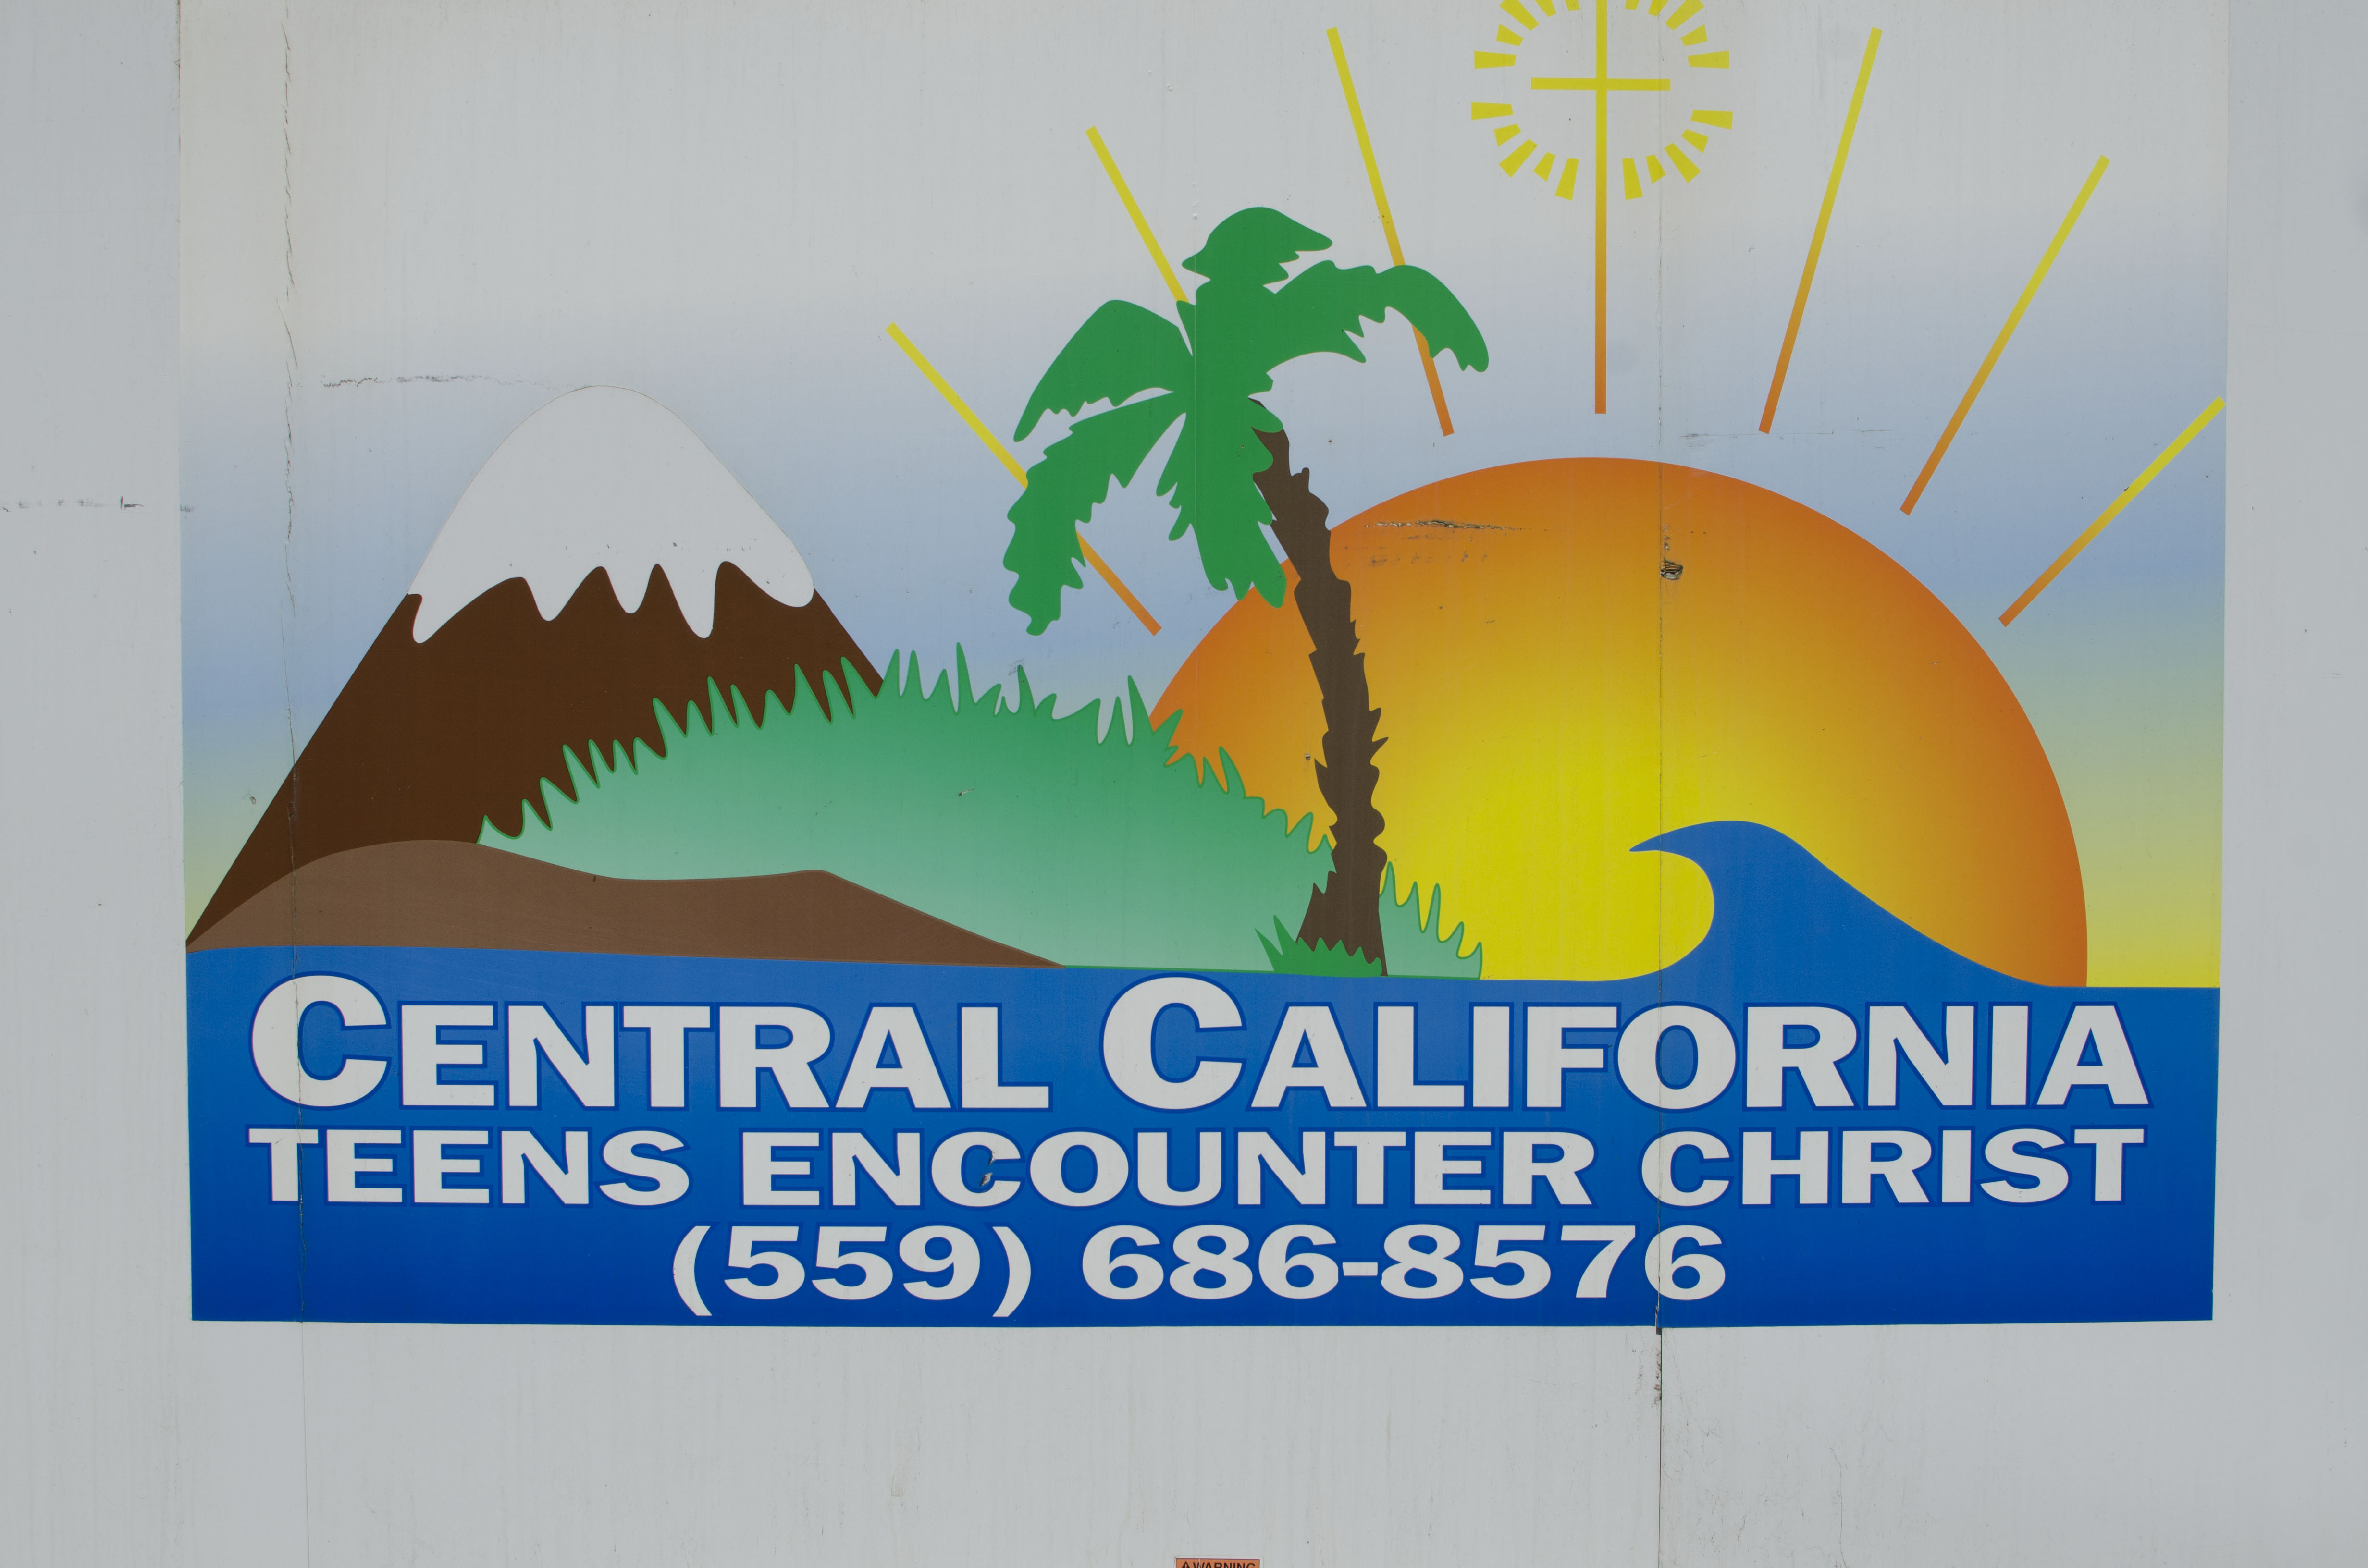 Los angeles gay and lesbian center